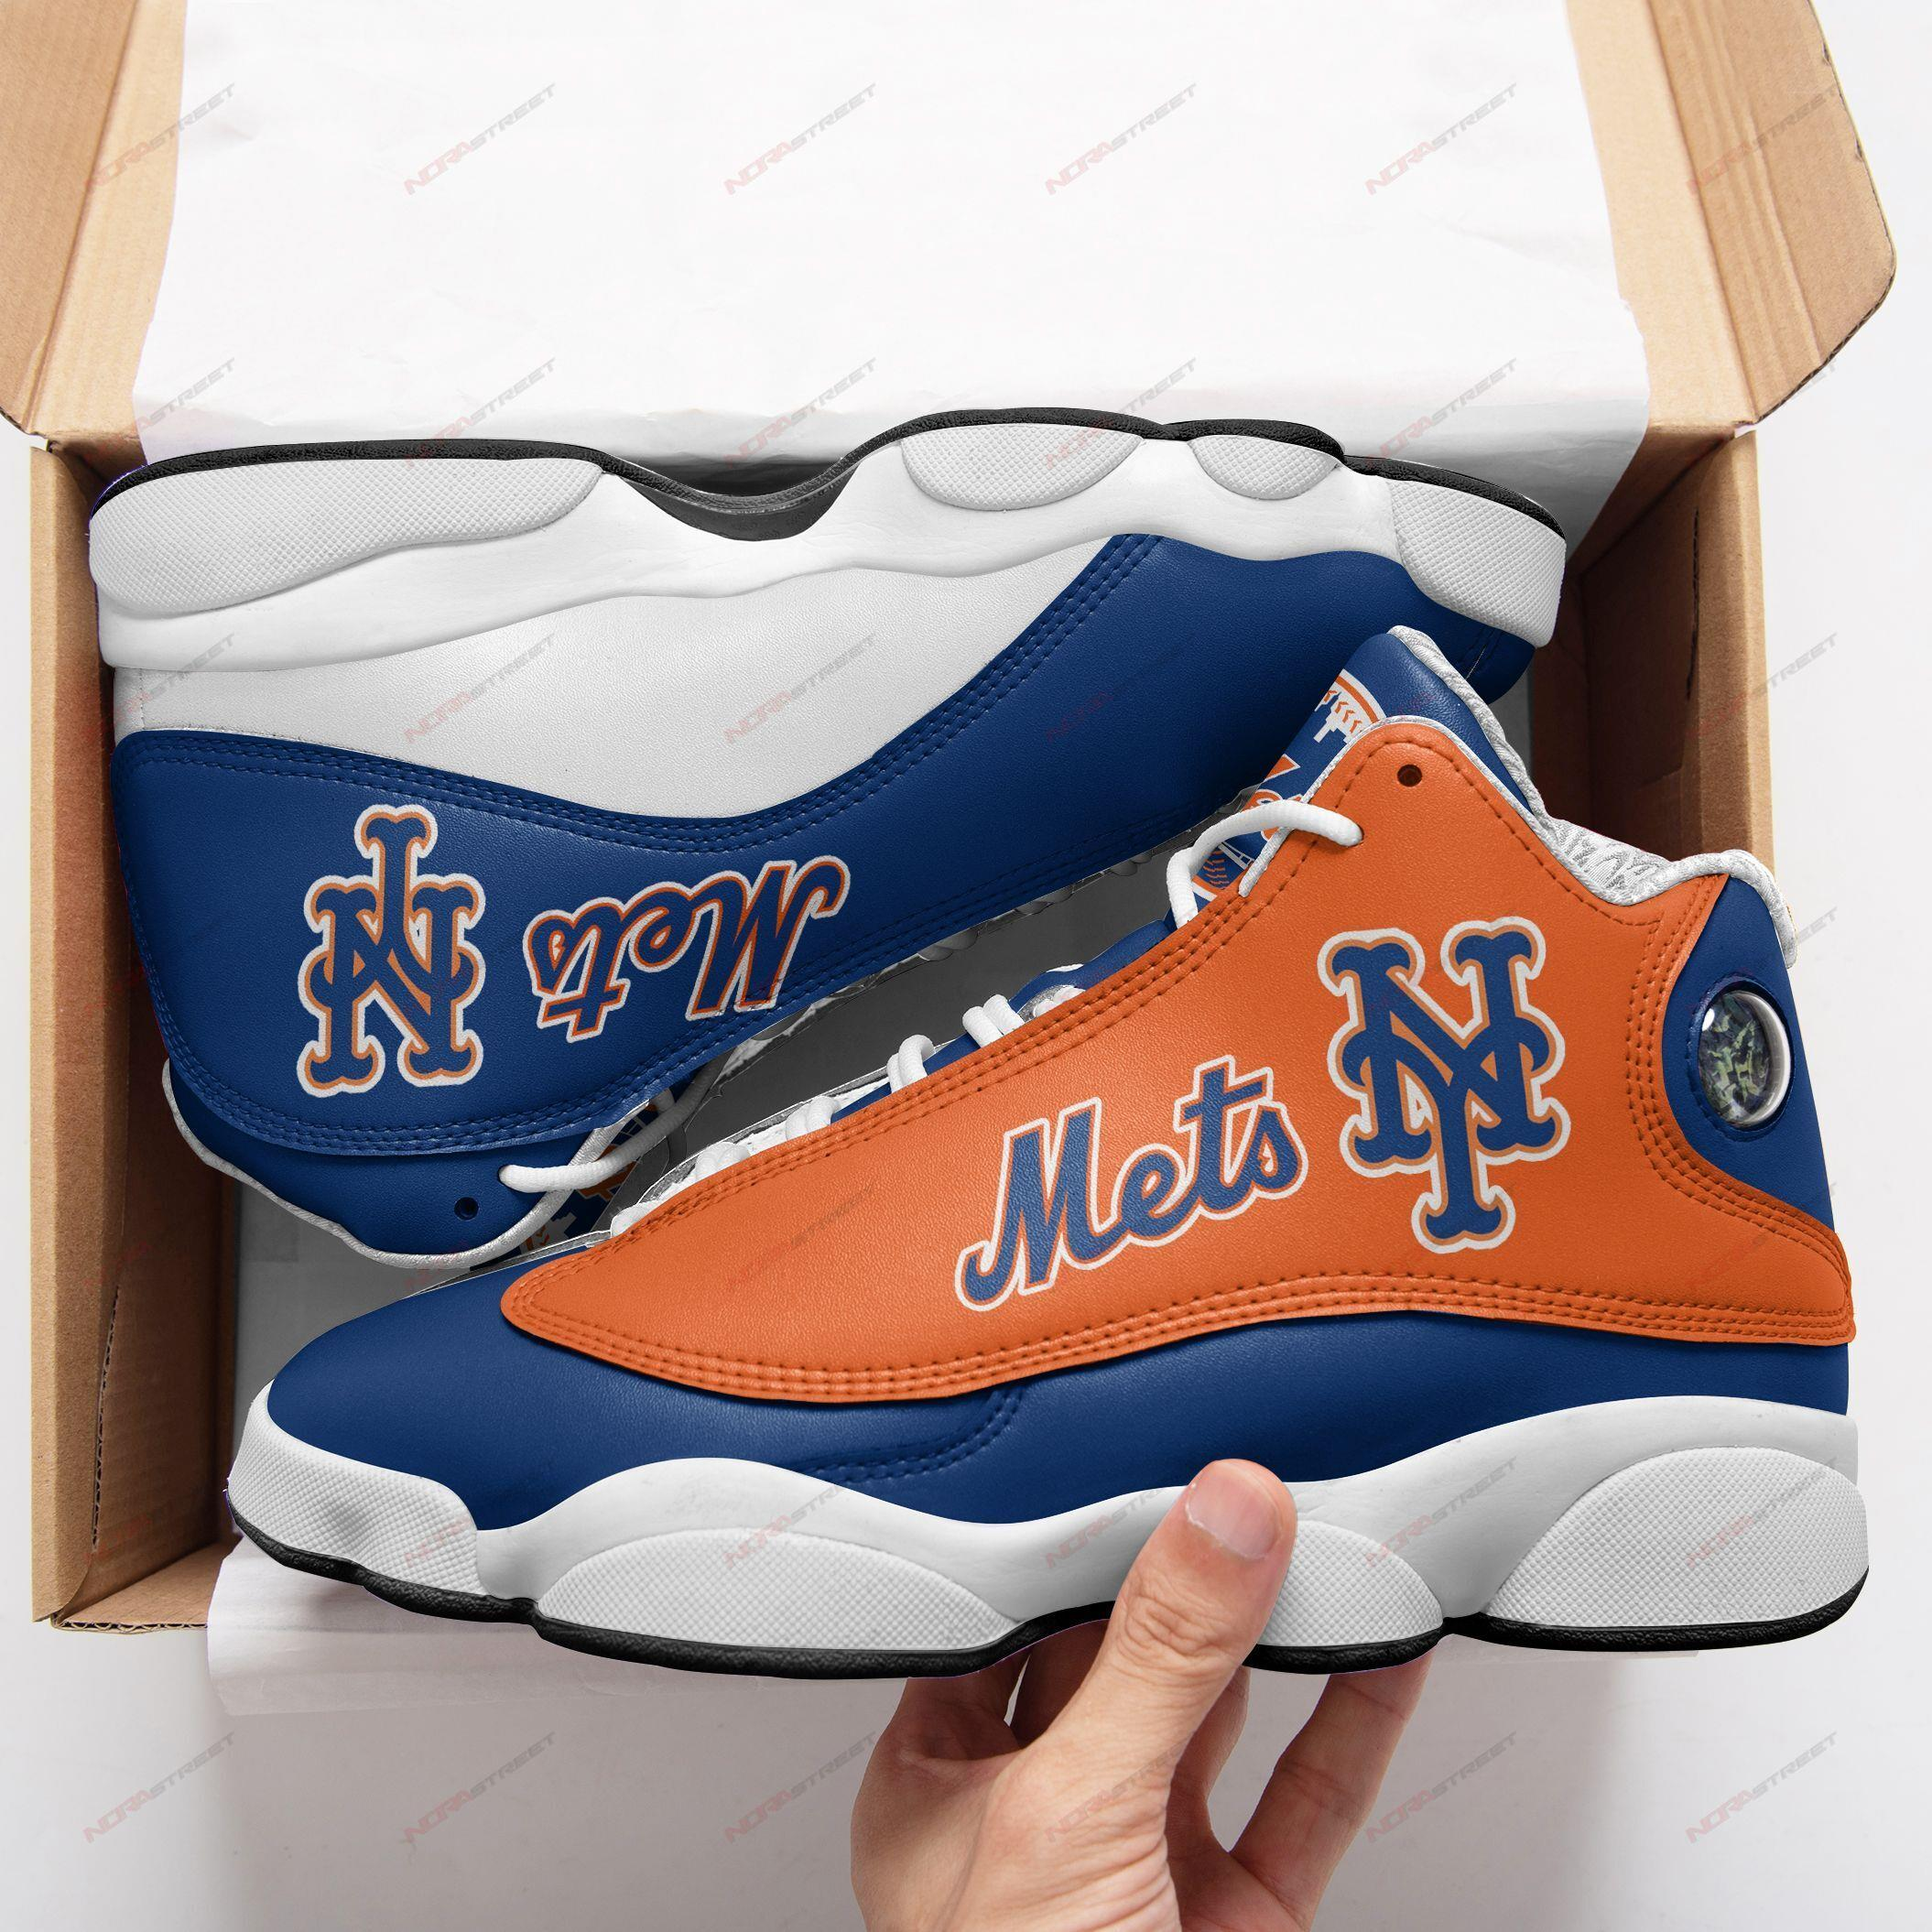 New York Mets Air Jordan 13 Sneakers Sport Shoes